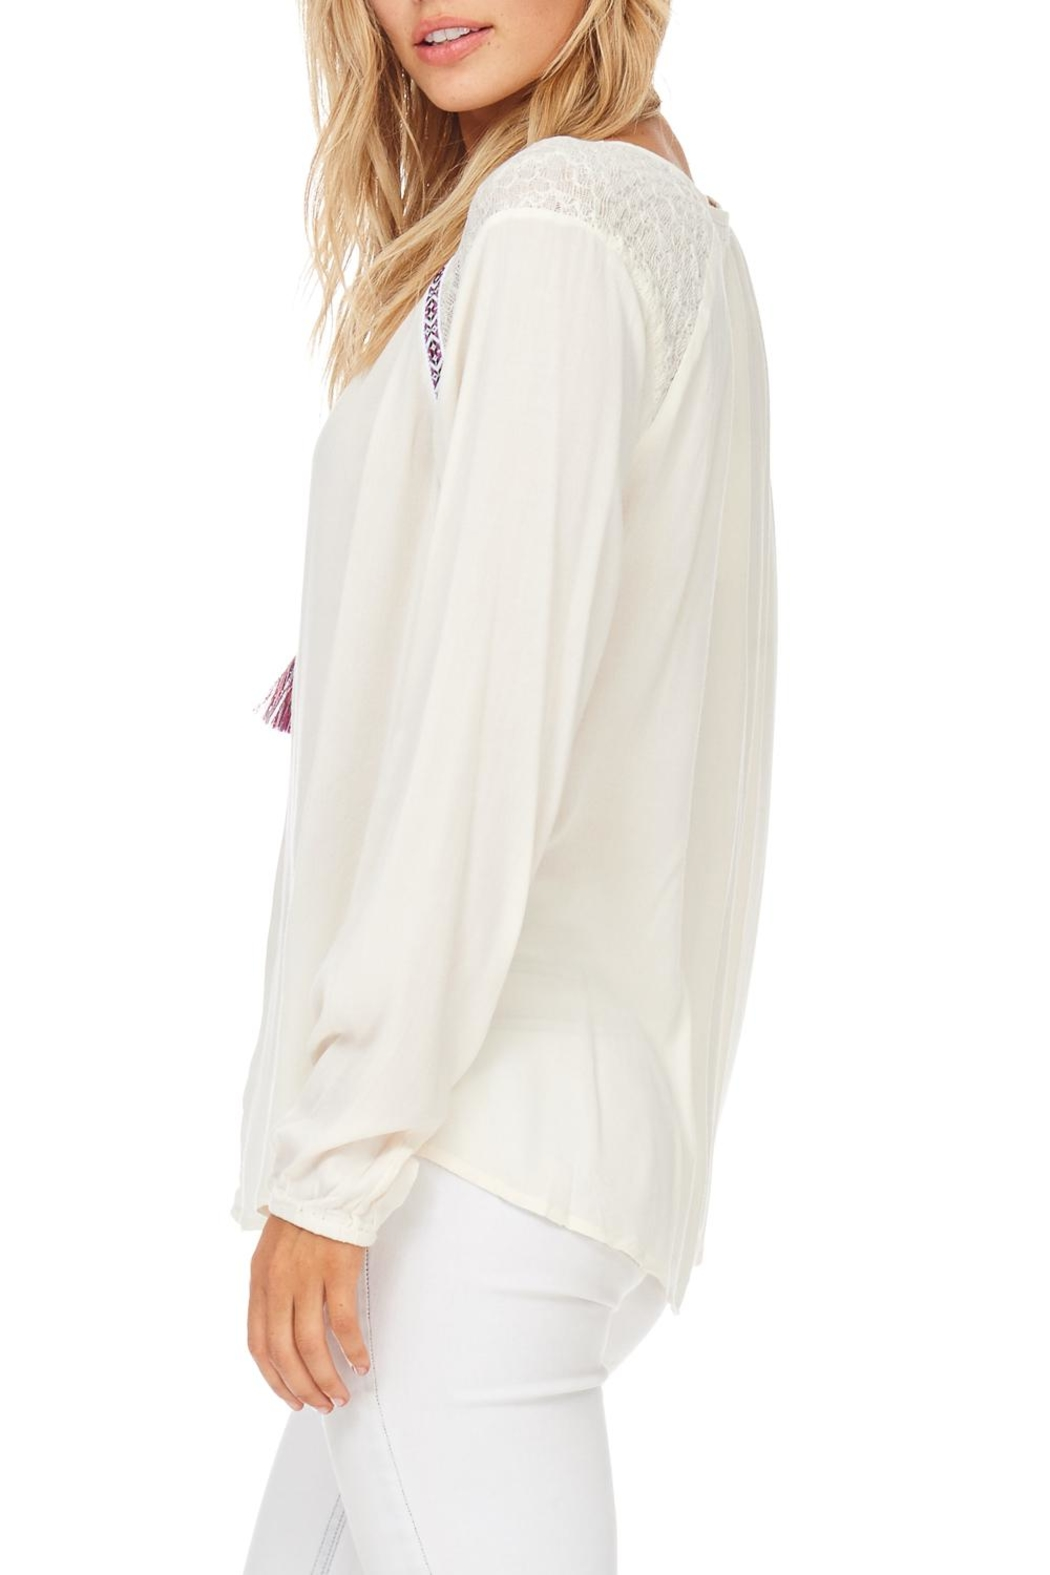 Hem & Thread Tie Peasant Long Sleeve Top - Back Cropped Image